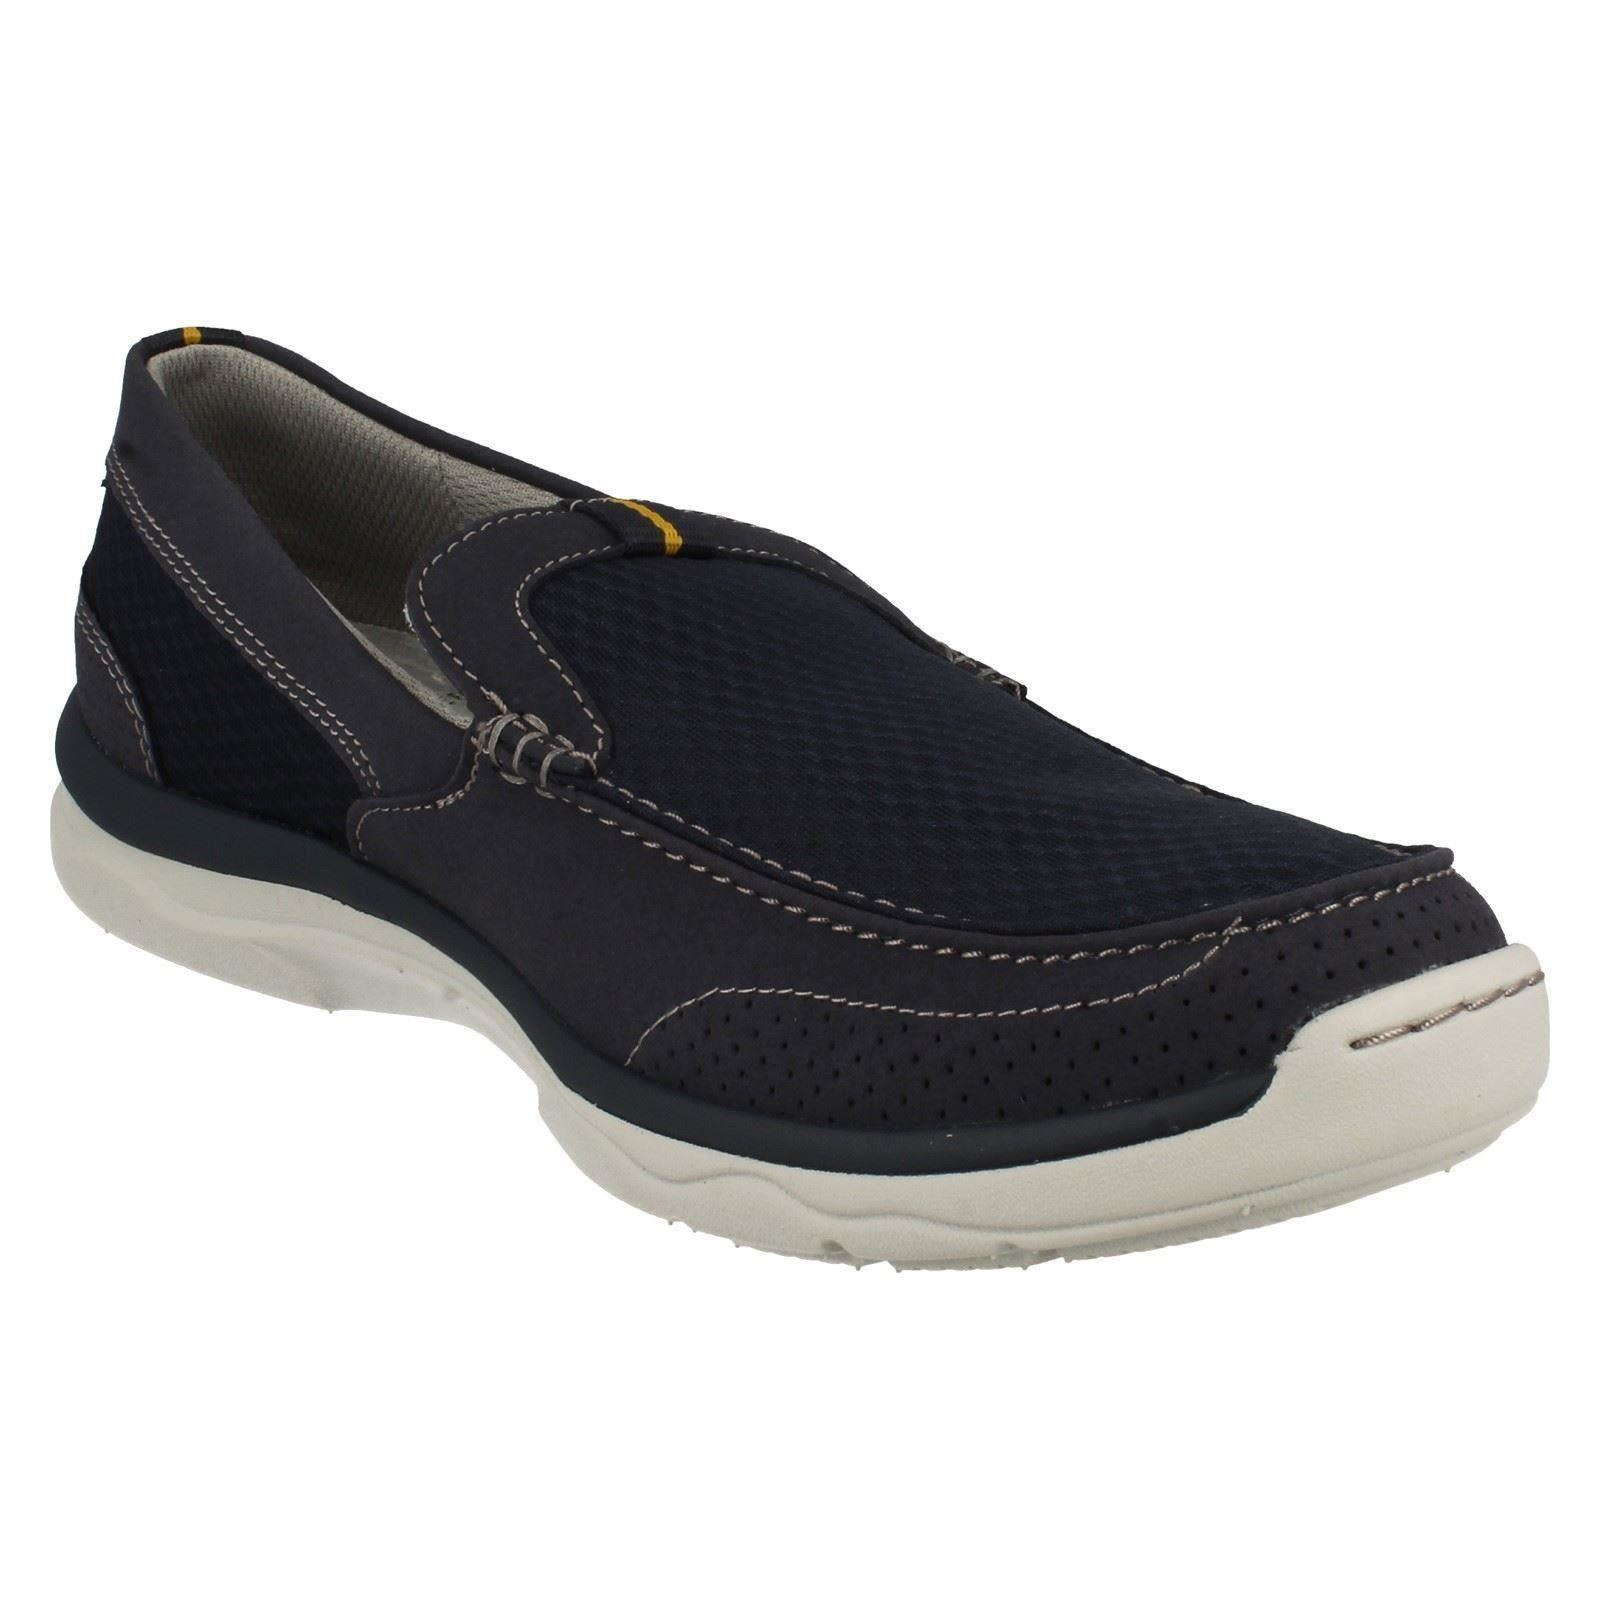 Men's Clarks Cloud Steppers Slip On Casual Step Schuhes Trainers Style -Marus Step Casual 971978